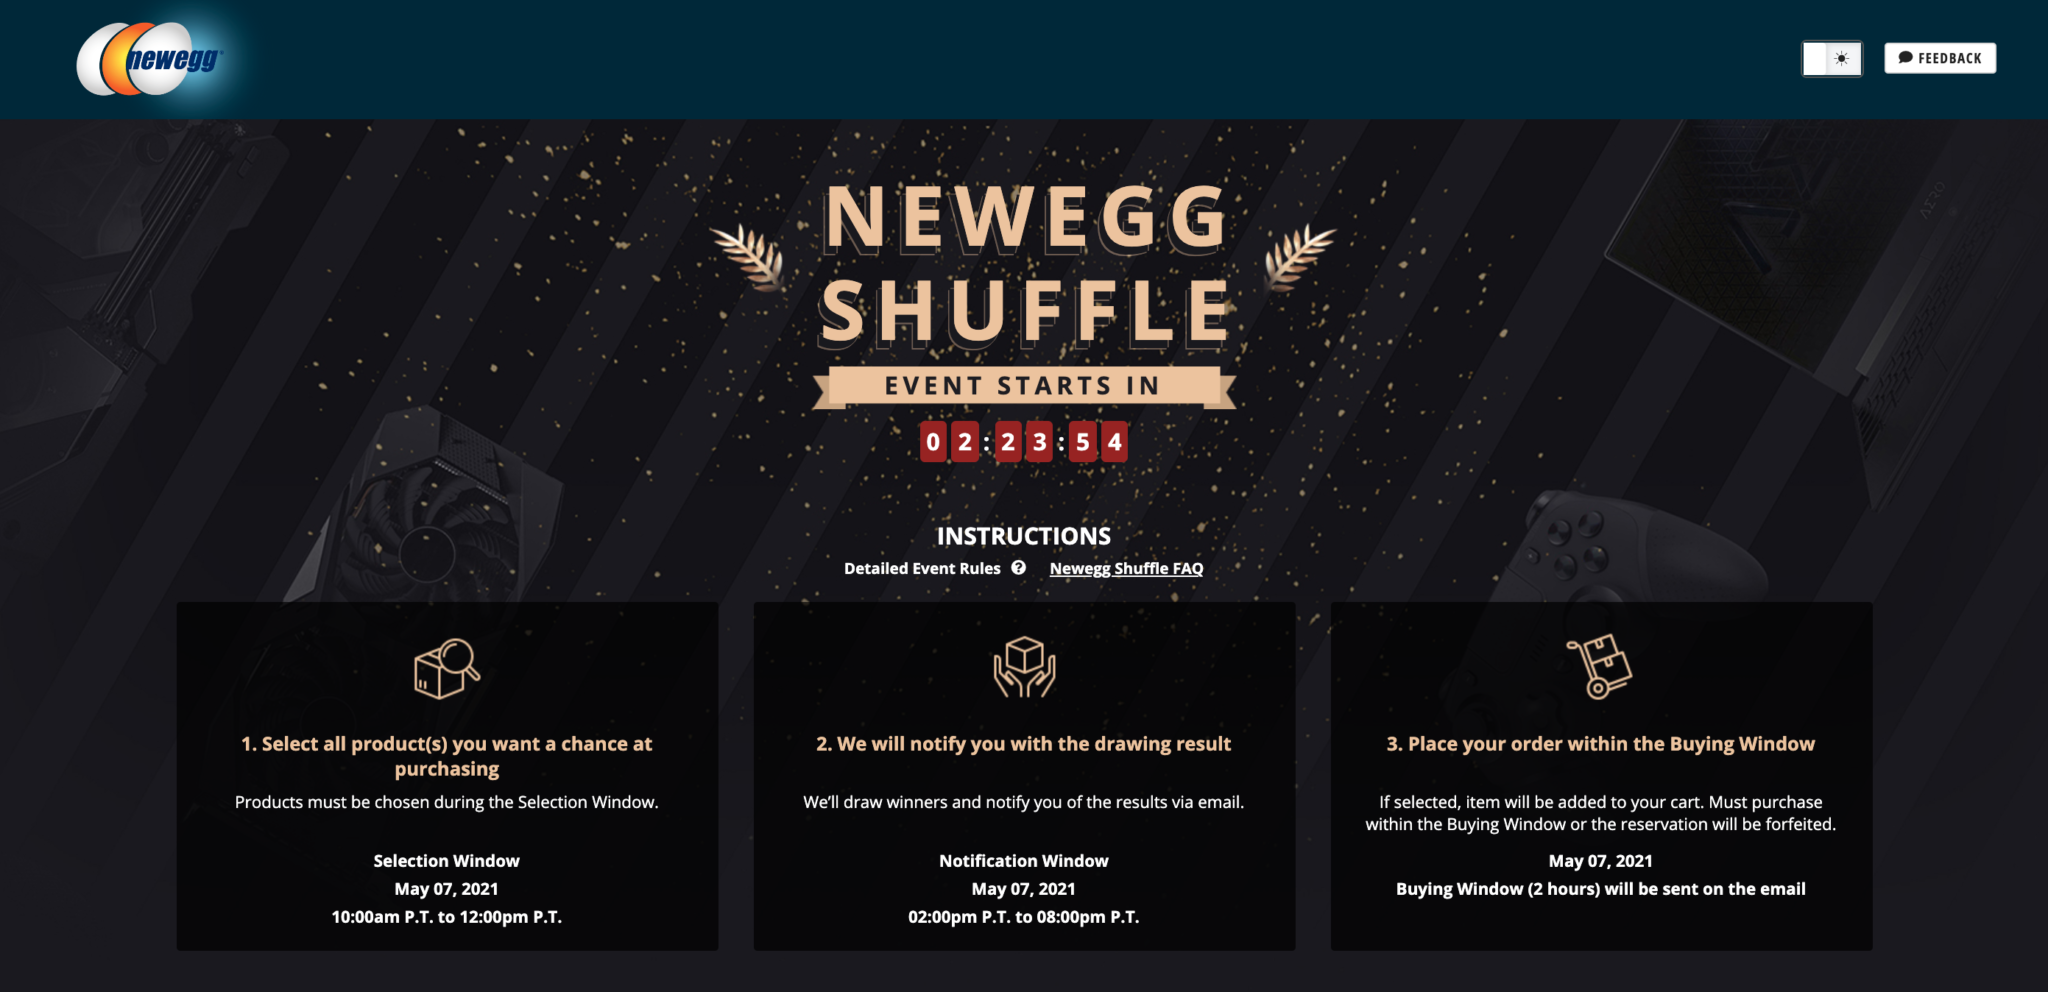 Newegg Shuffle – May 7th: Multiple NVIDIA GeForce RTX 3090 Graphics & AMD Radeon RX 6900 XT Graphics Cards Available In Today's Shuffle